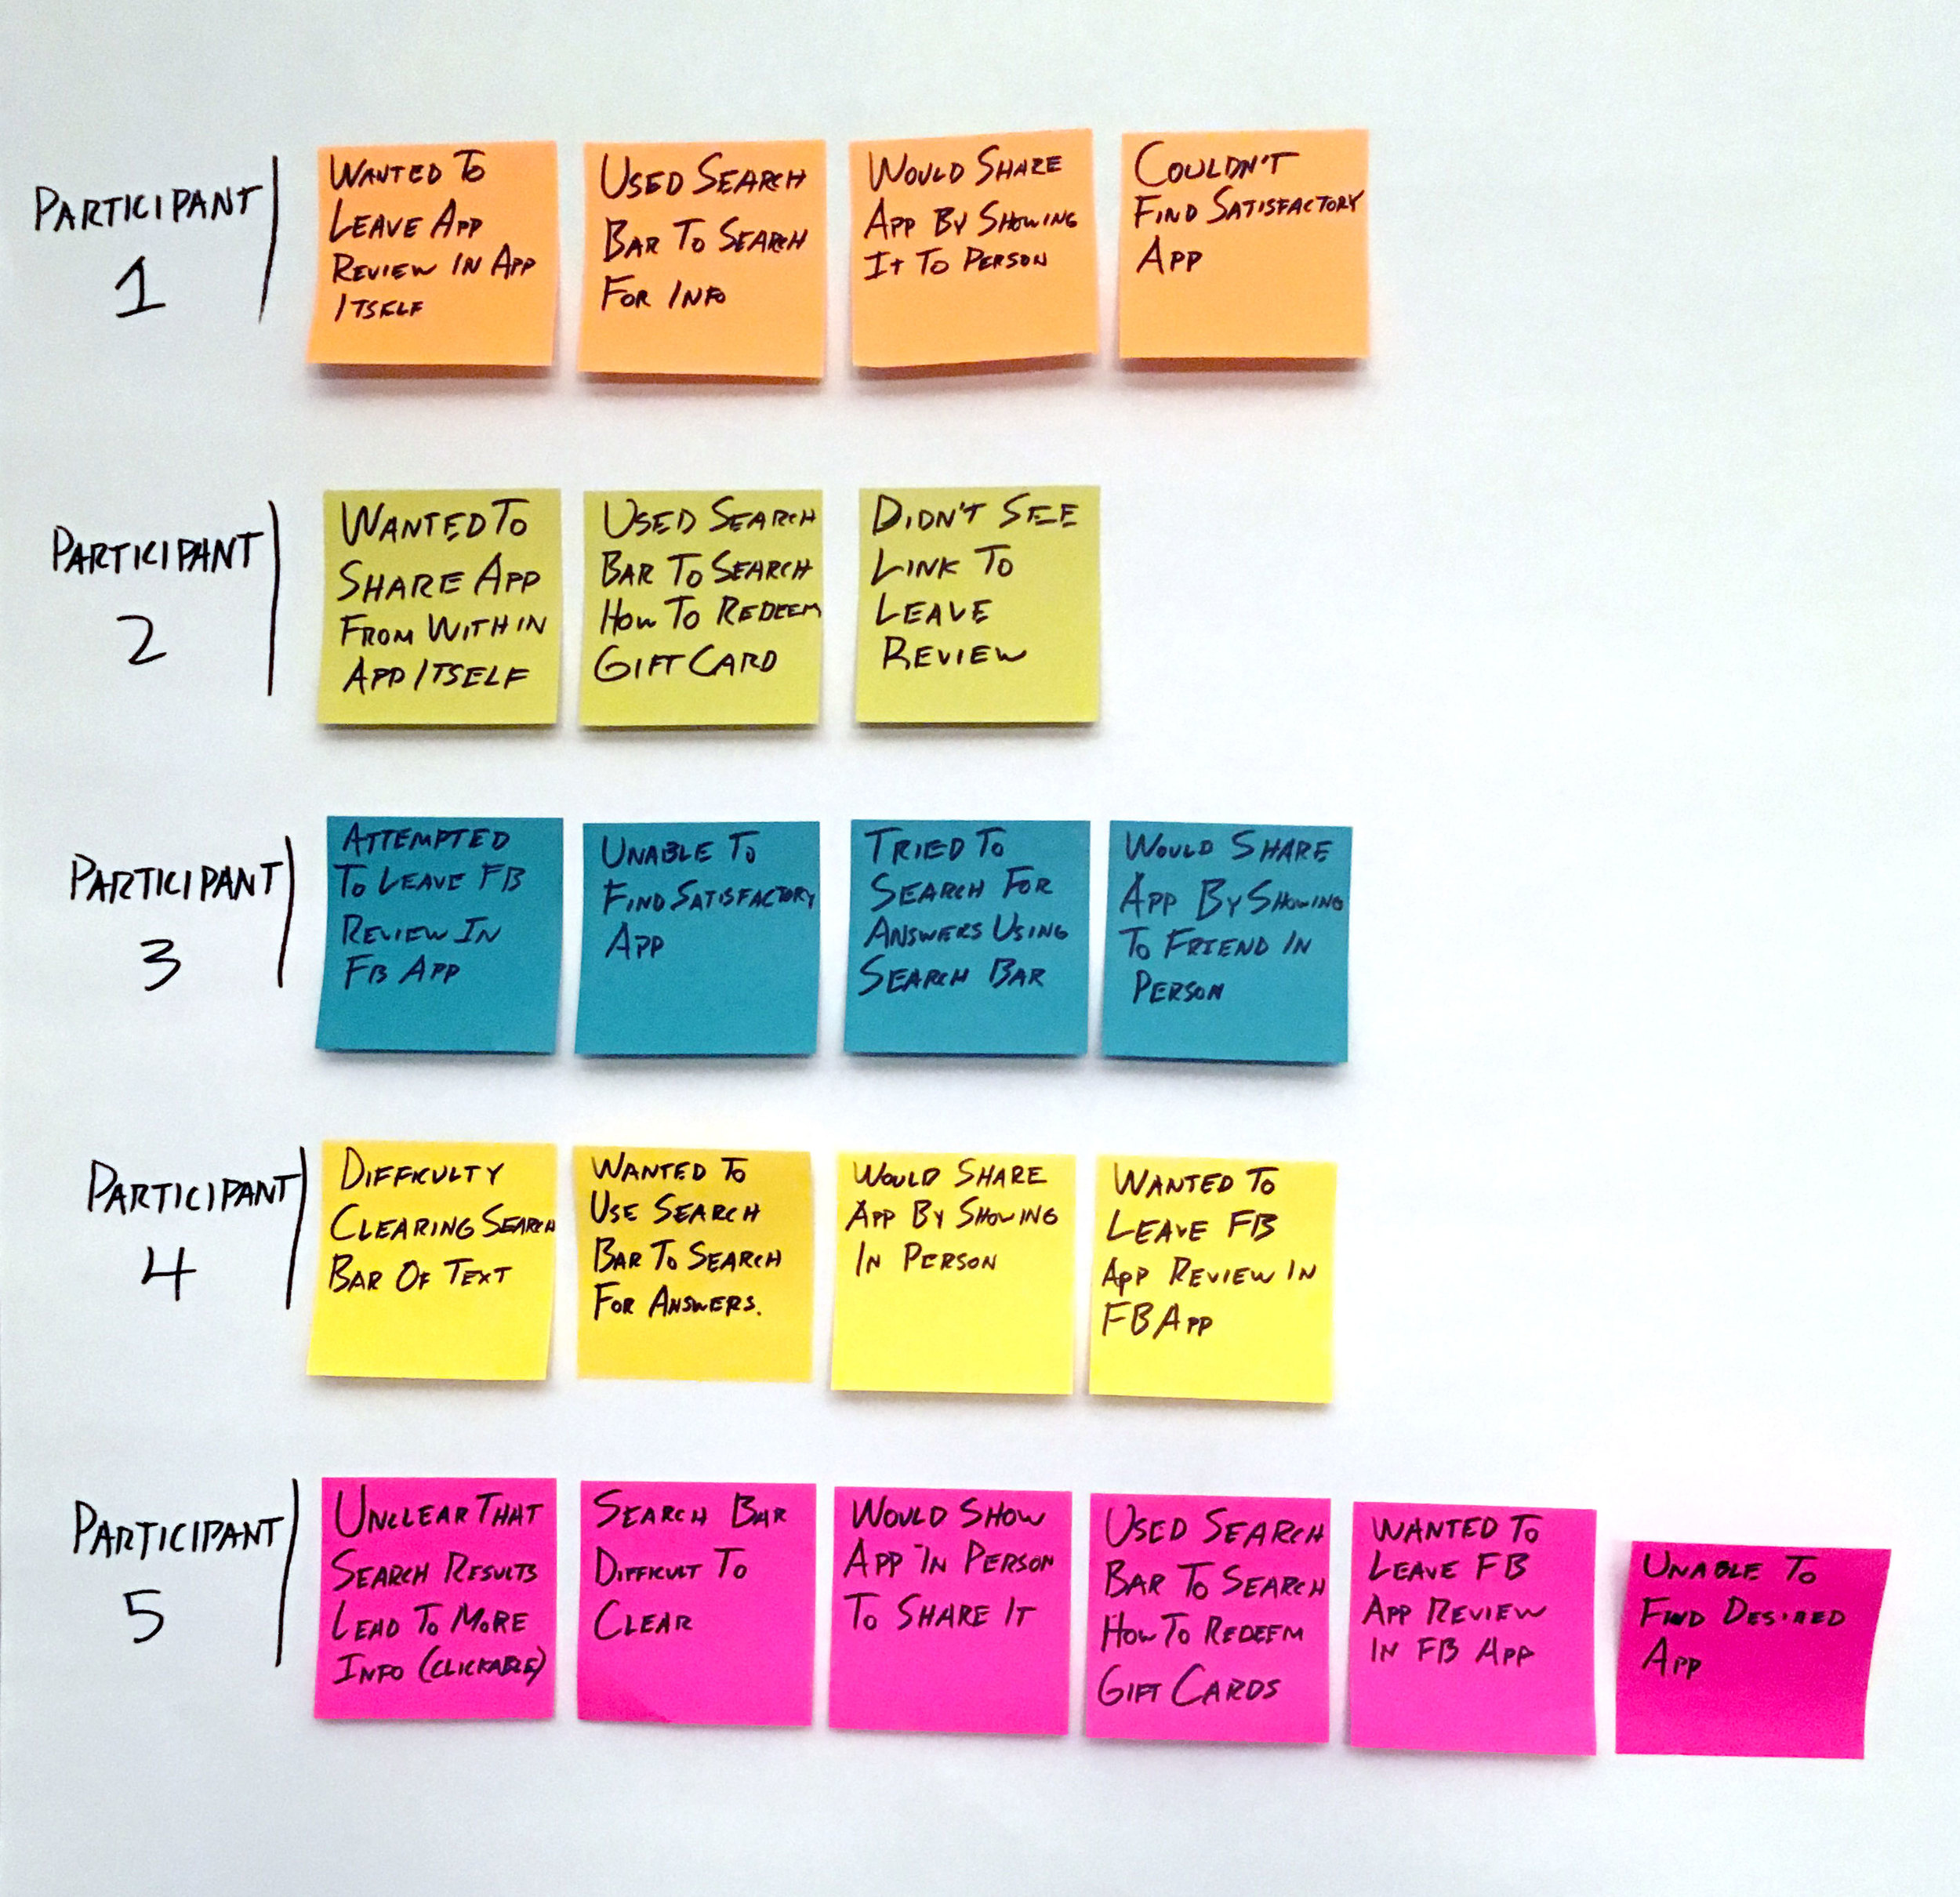 Usability testing synthesis